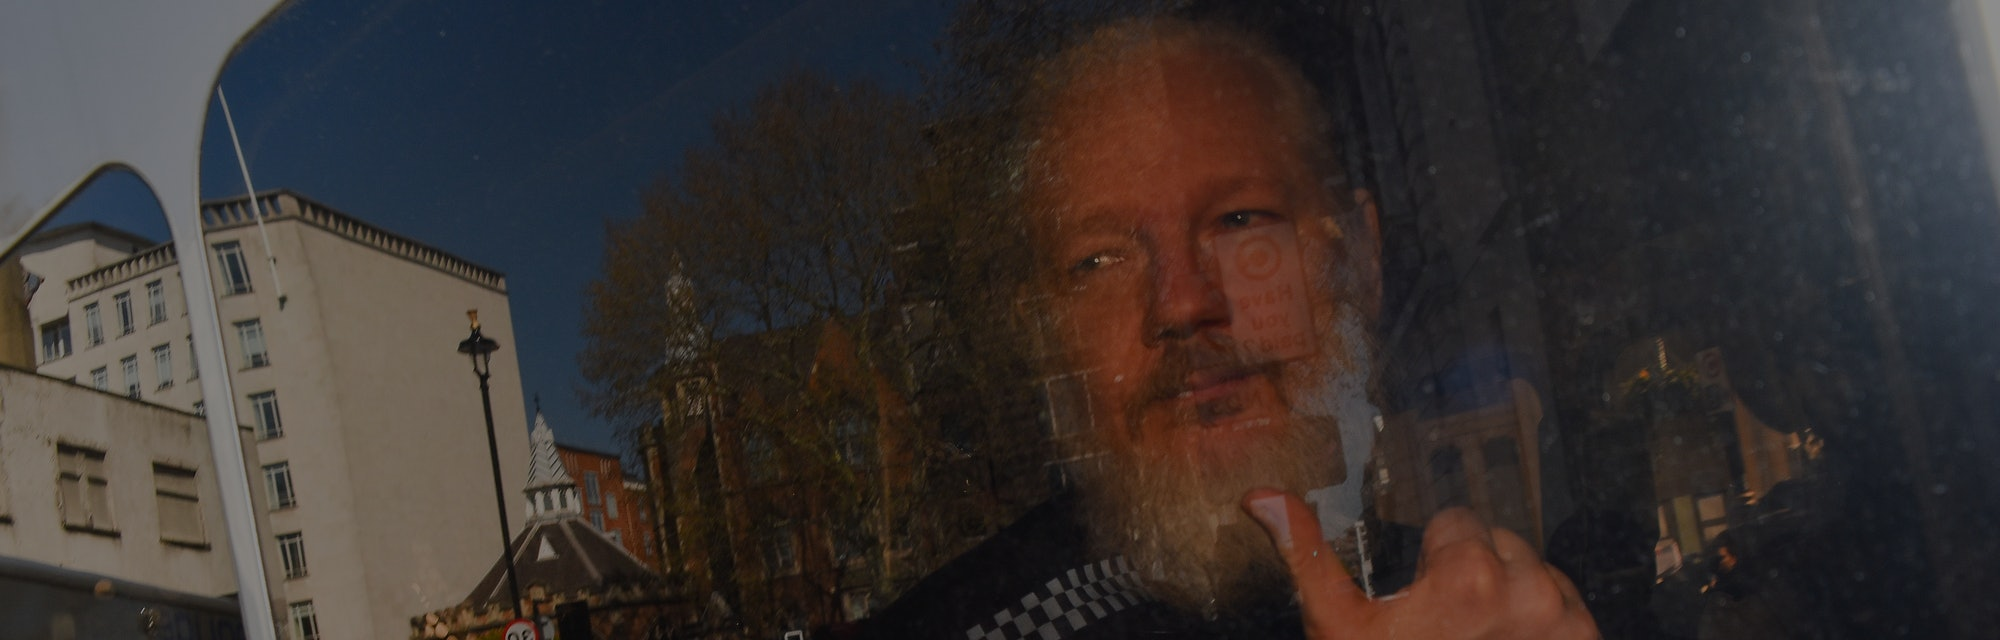 Wikileaks founder Julian Assange makes his way into the Westminster Magistrates Court after being ar...